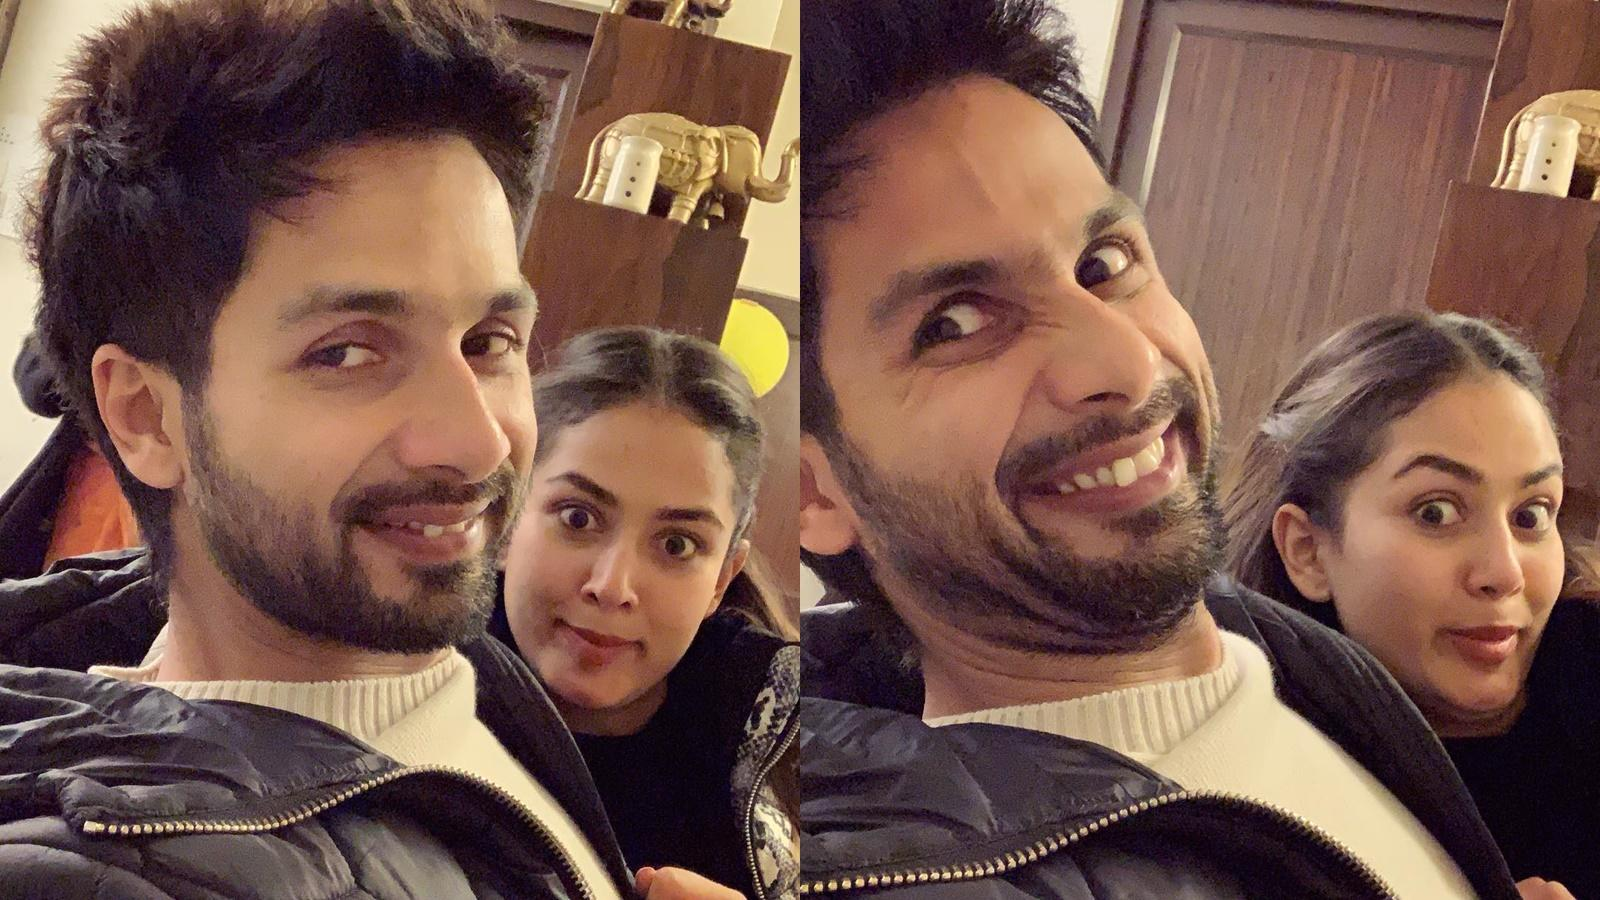 Shahid Kapoor's quirky birthday celebration with wife Mira Rajput